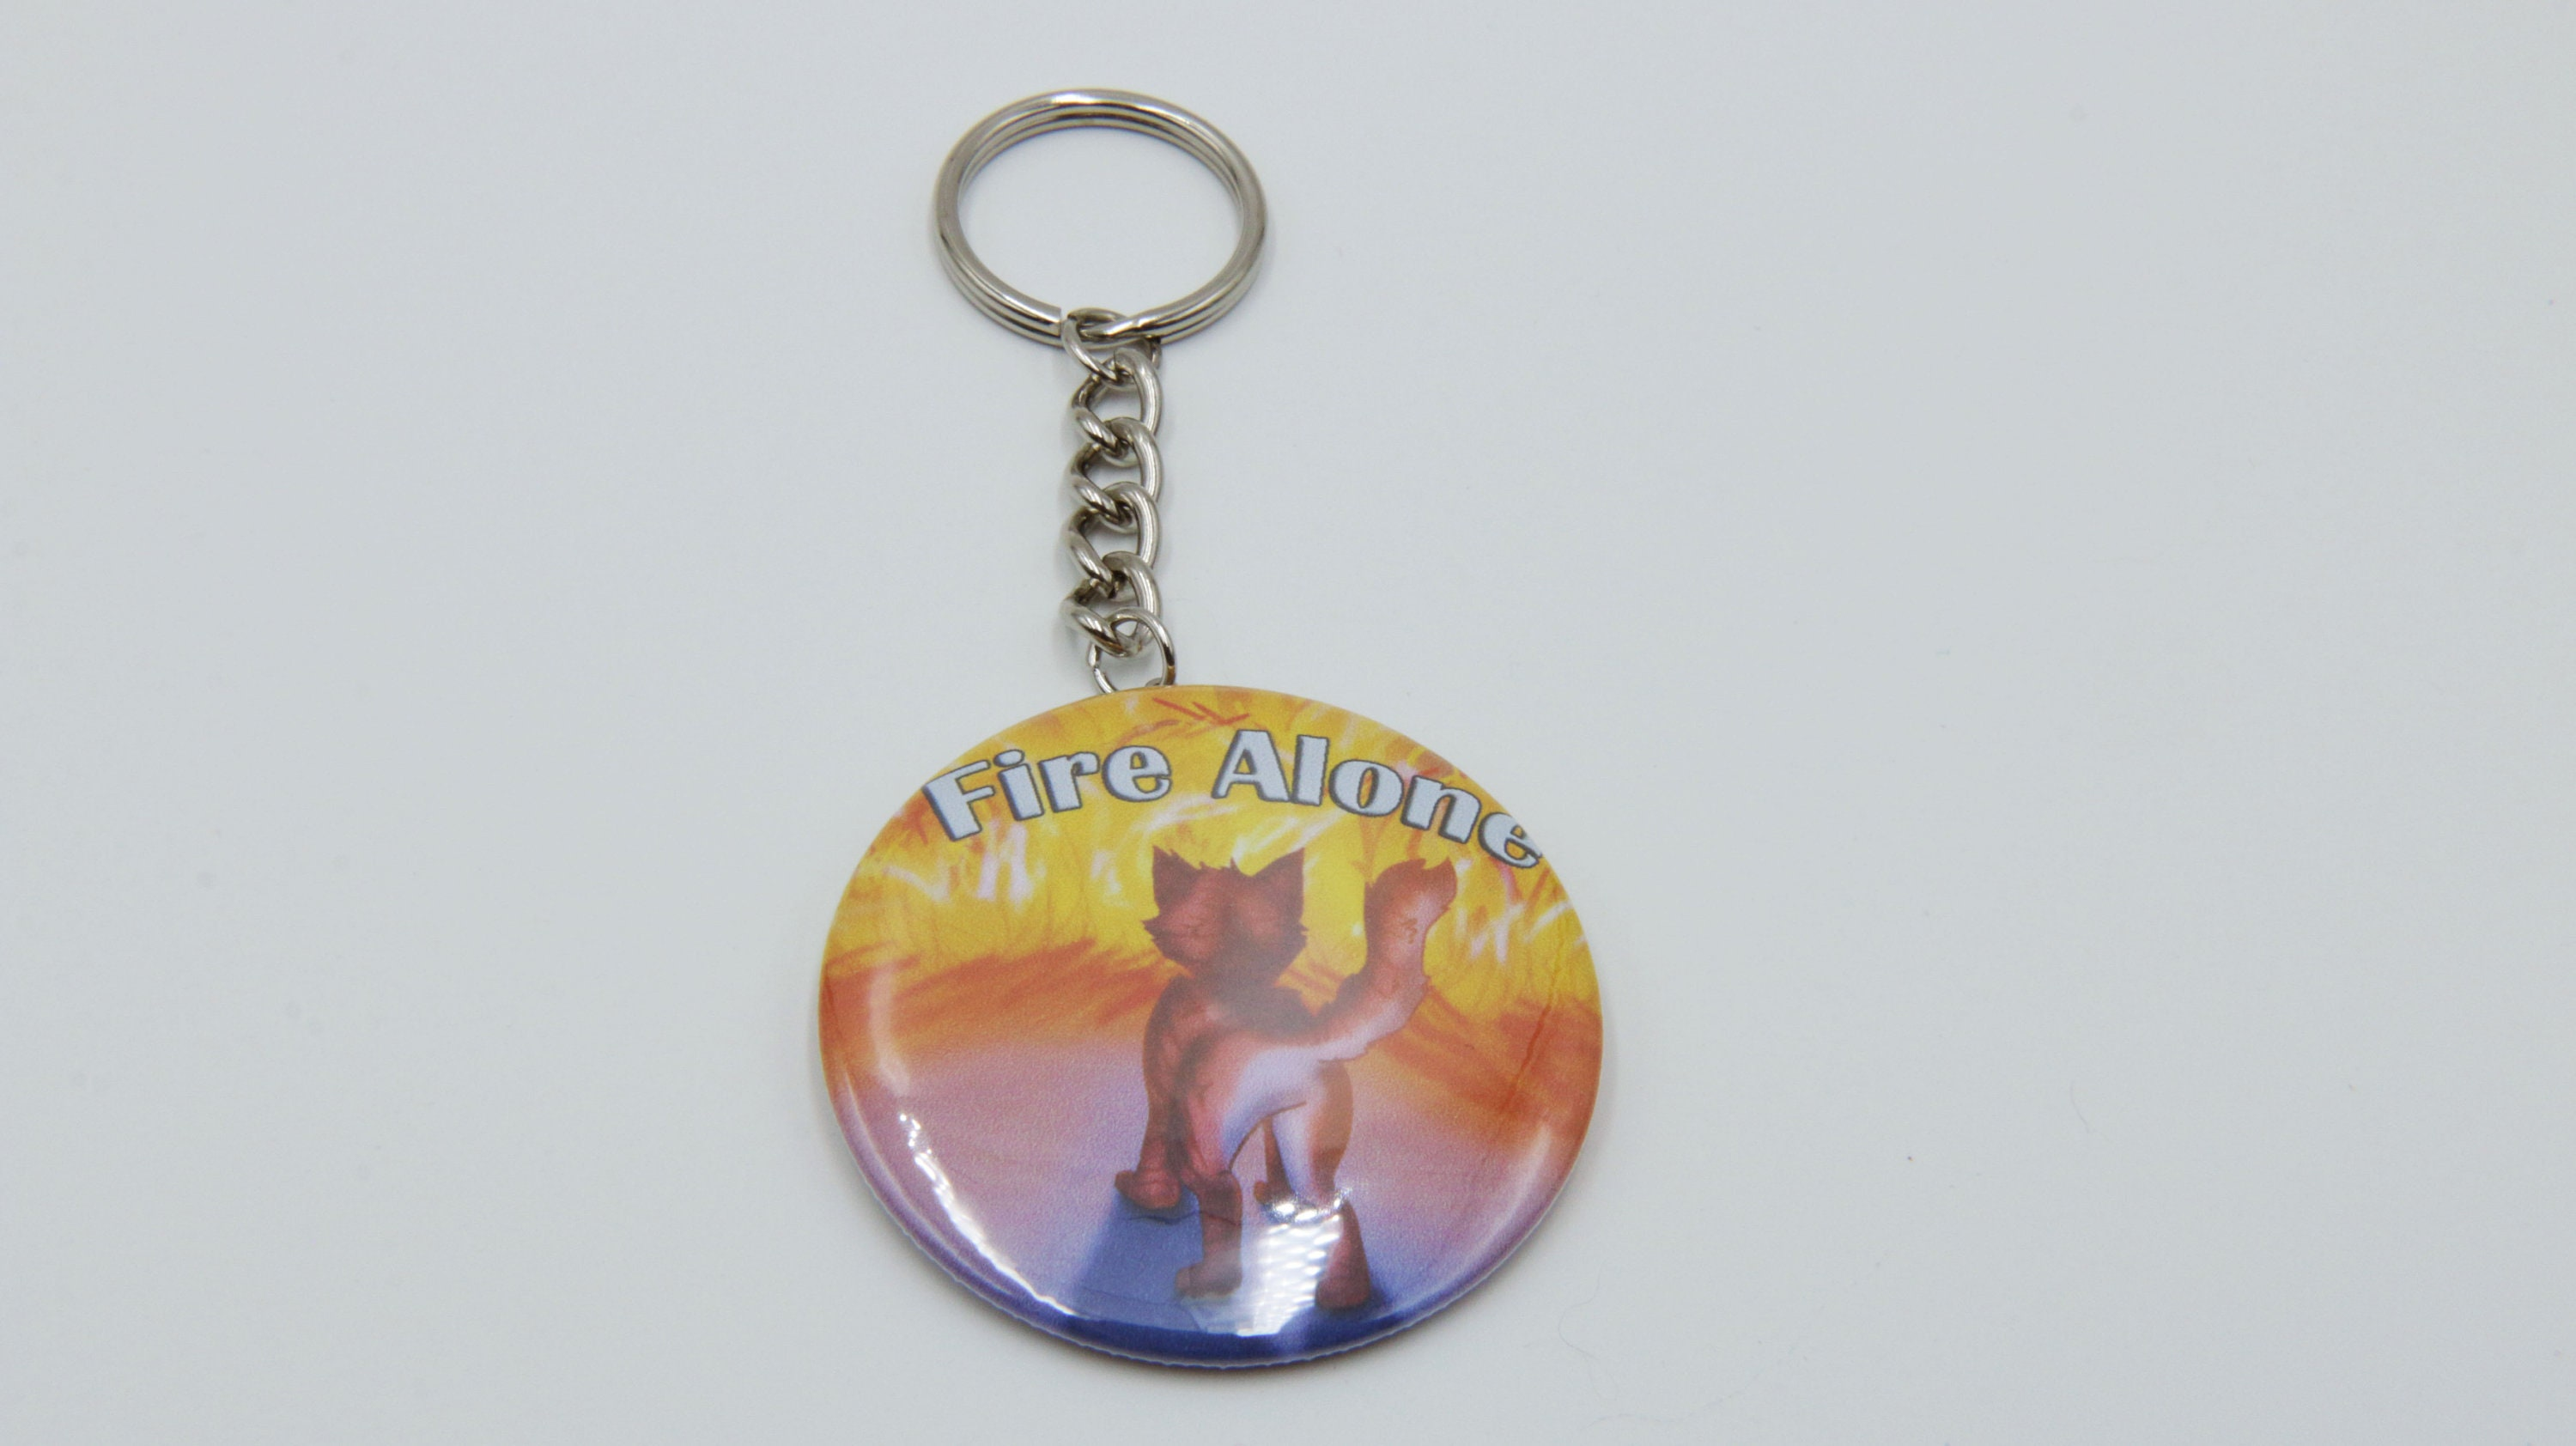 Fire Alone  Firepaw Warrior Cats 2.25 in Keychain  f9a1e4058be4